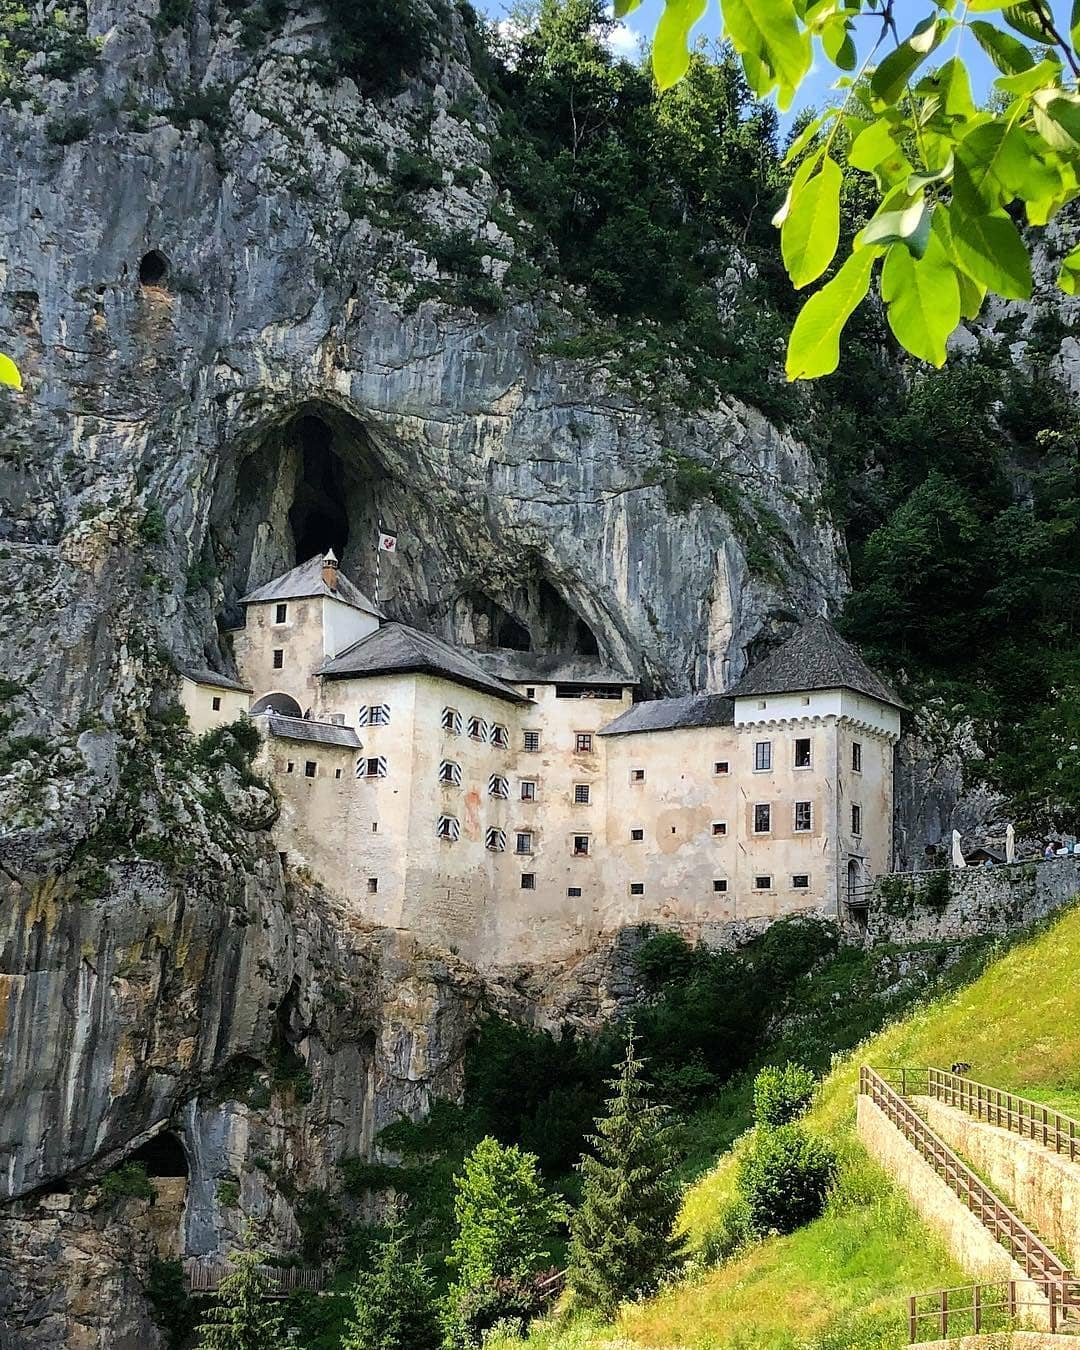 Predjama Castle is a unique castle - it's bulit up a 123m cliff and cave below it is a part of 14 km Predjama cave system.  Thanks @gourmetgadabouts for sharing your photo with #ifeelsLOVEnia.